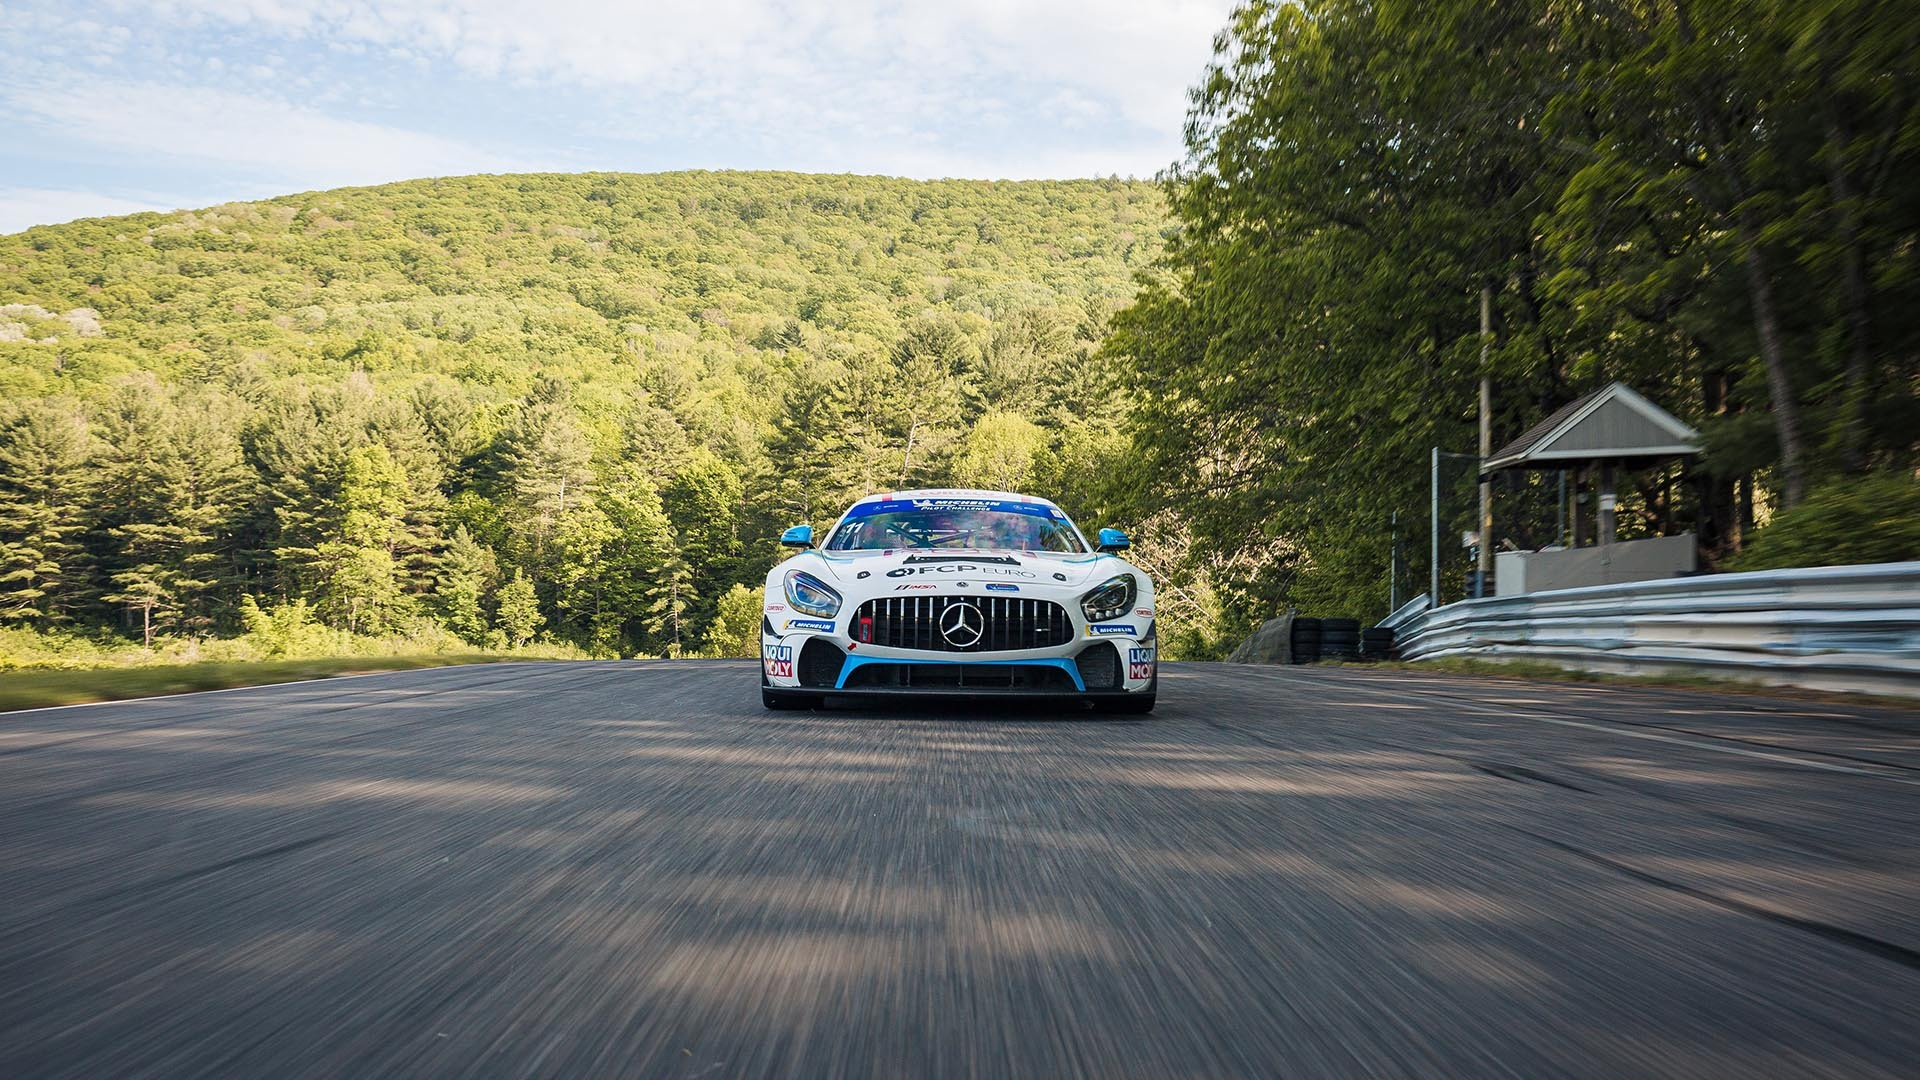 FCP Euro Motorsports Heads To Their Home Turf, Lime Rock Park, For Round 6 Of The IMSA Michelin Pilot Challenge